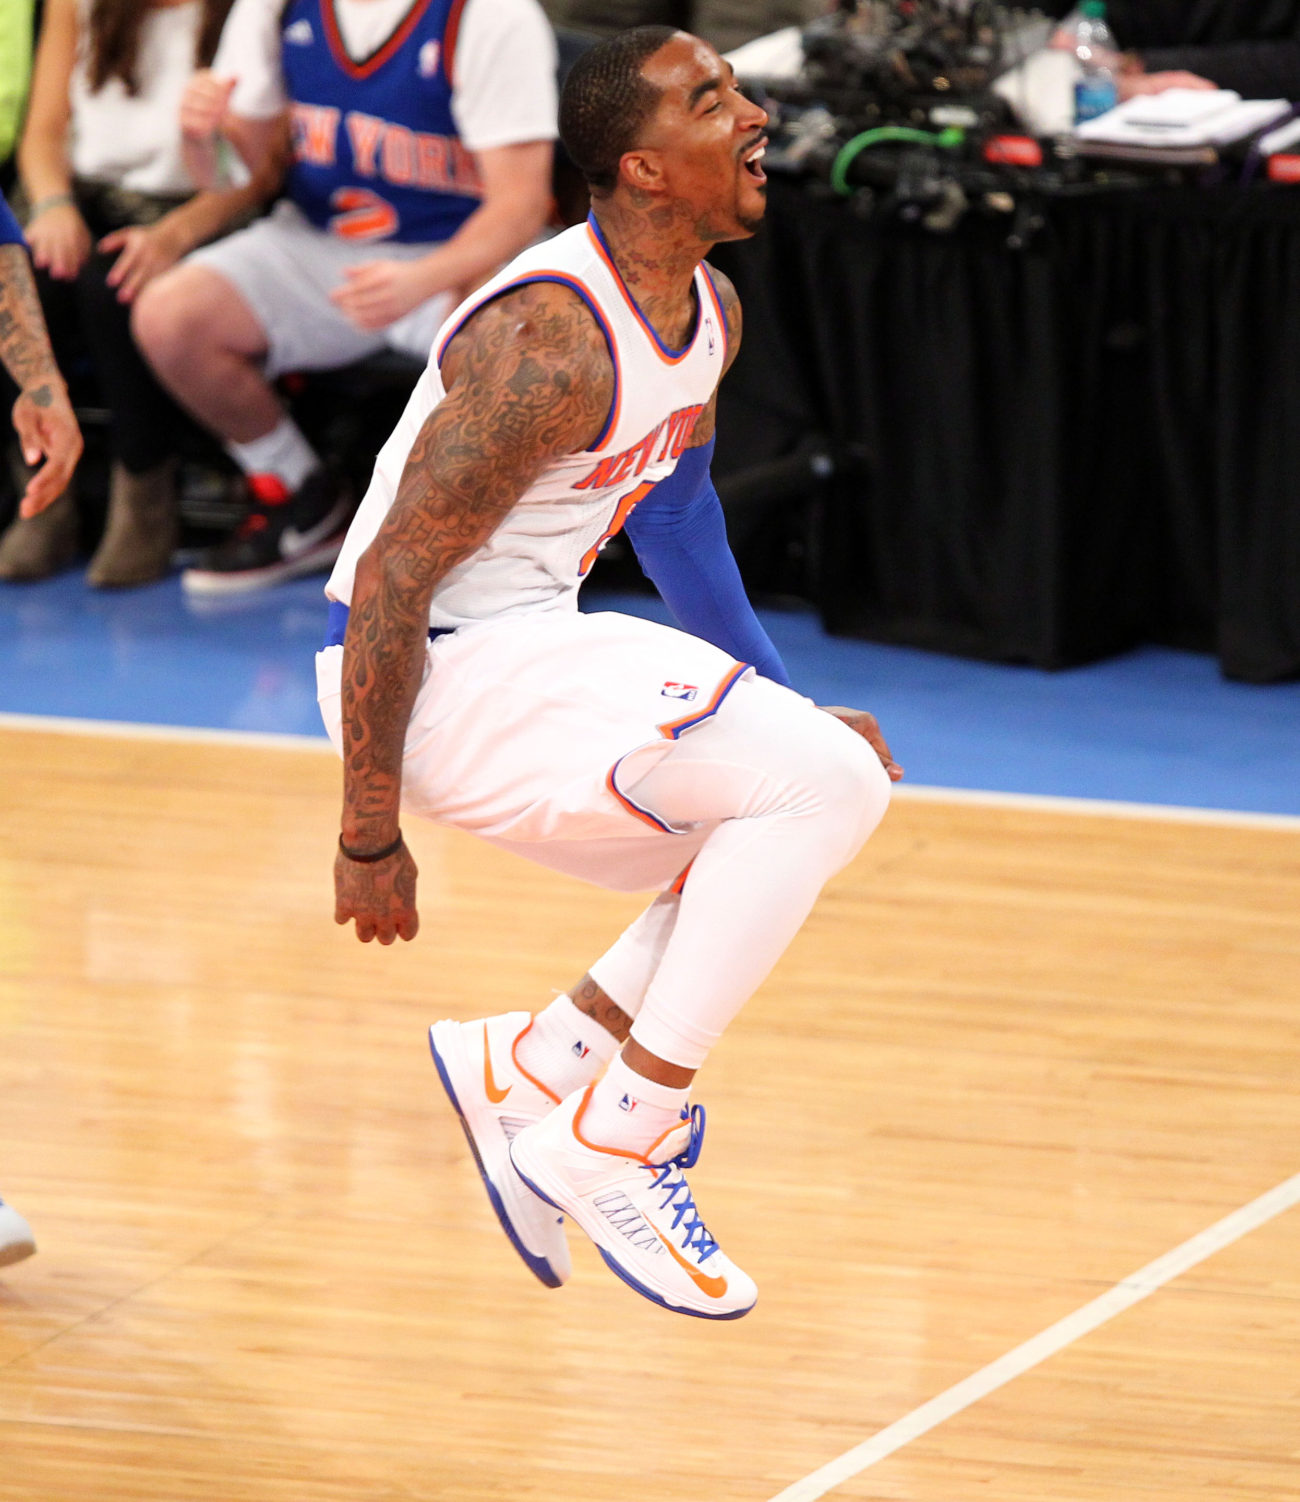 May 5, 2013; New York, NY, USA; New York Knicks guard J.R. Smith (8) reacts during the first half at Madison Square Garden. Mandatory Credit: Danny Wild-USA TODAY Sports